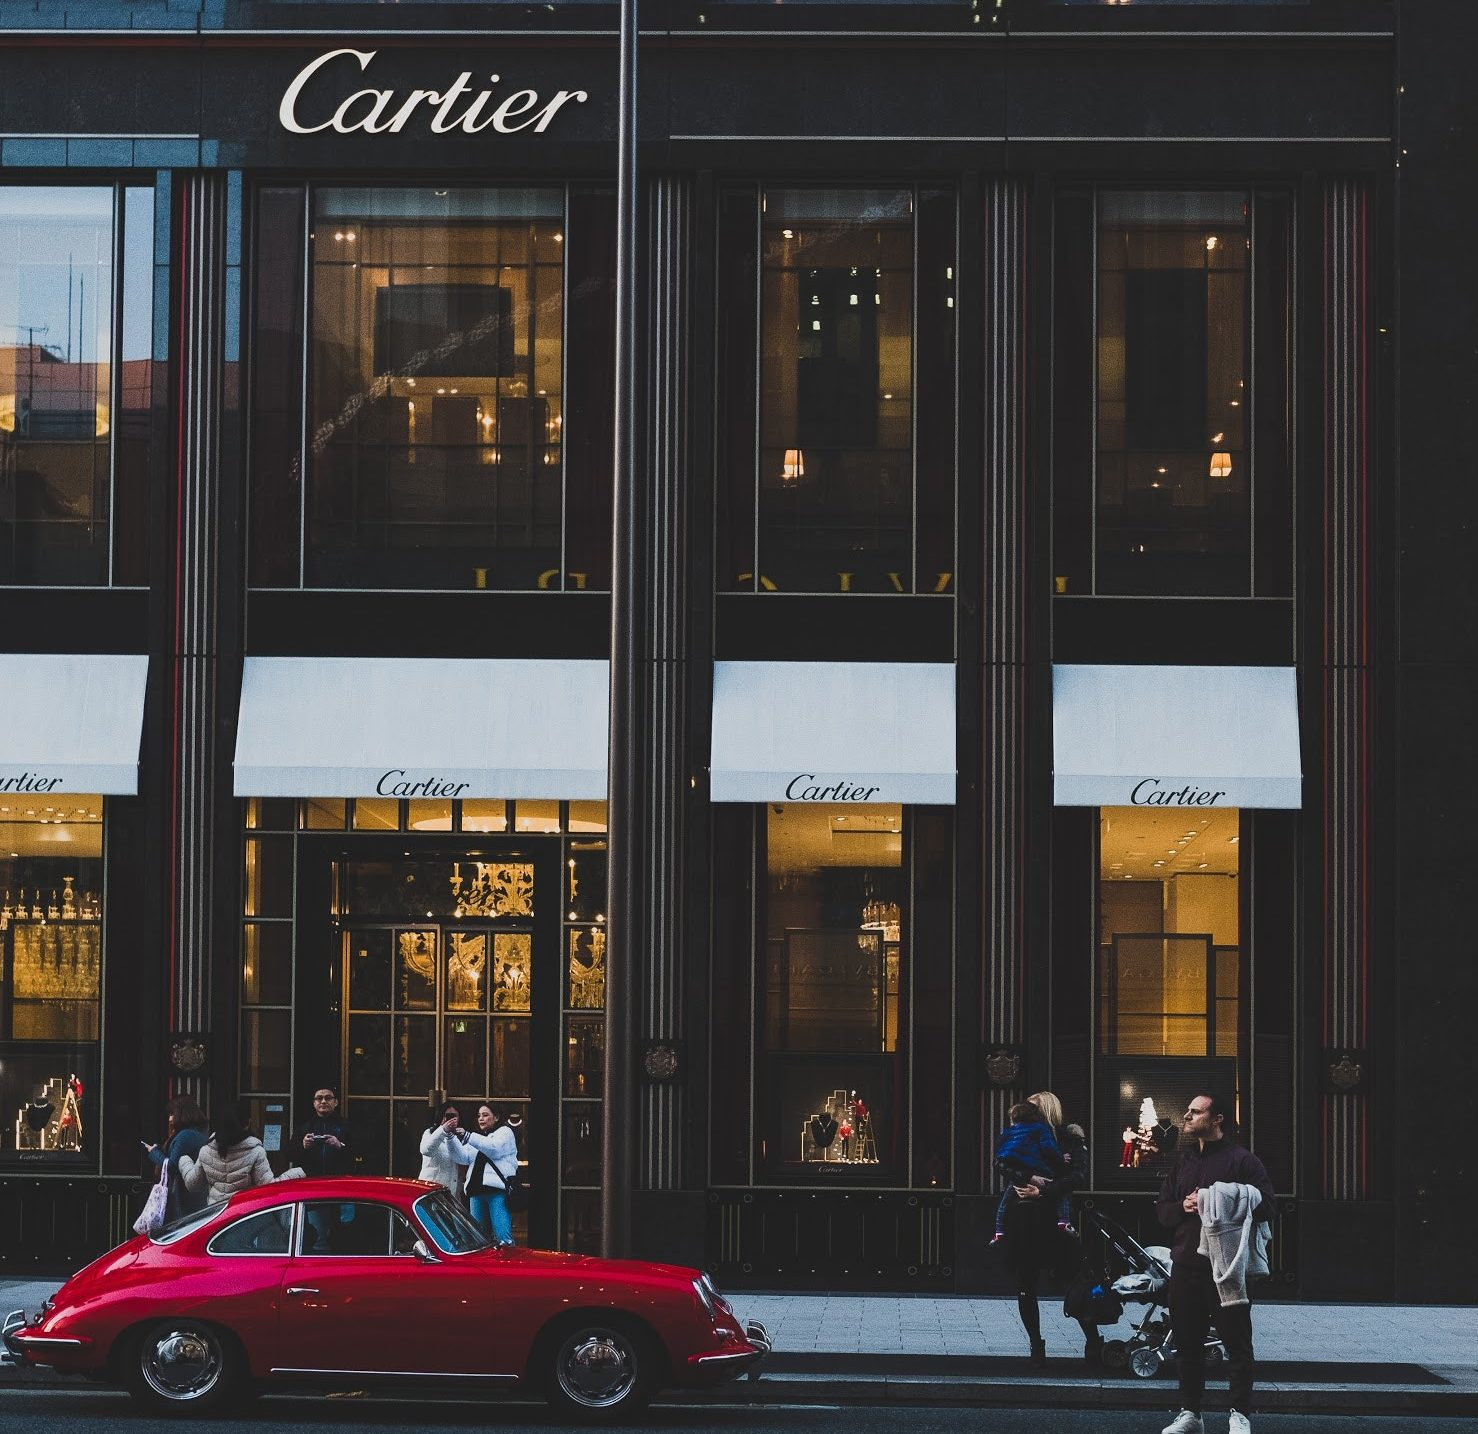 cartier luxury imagery